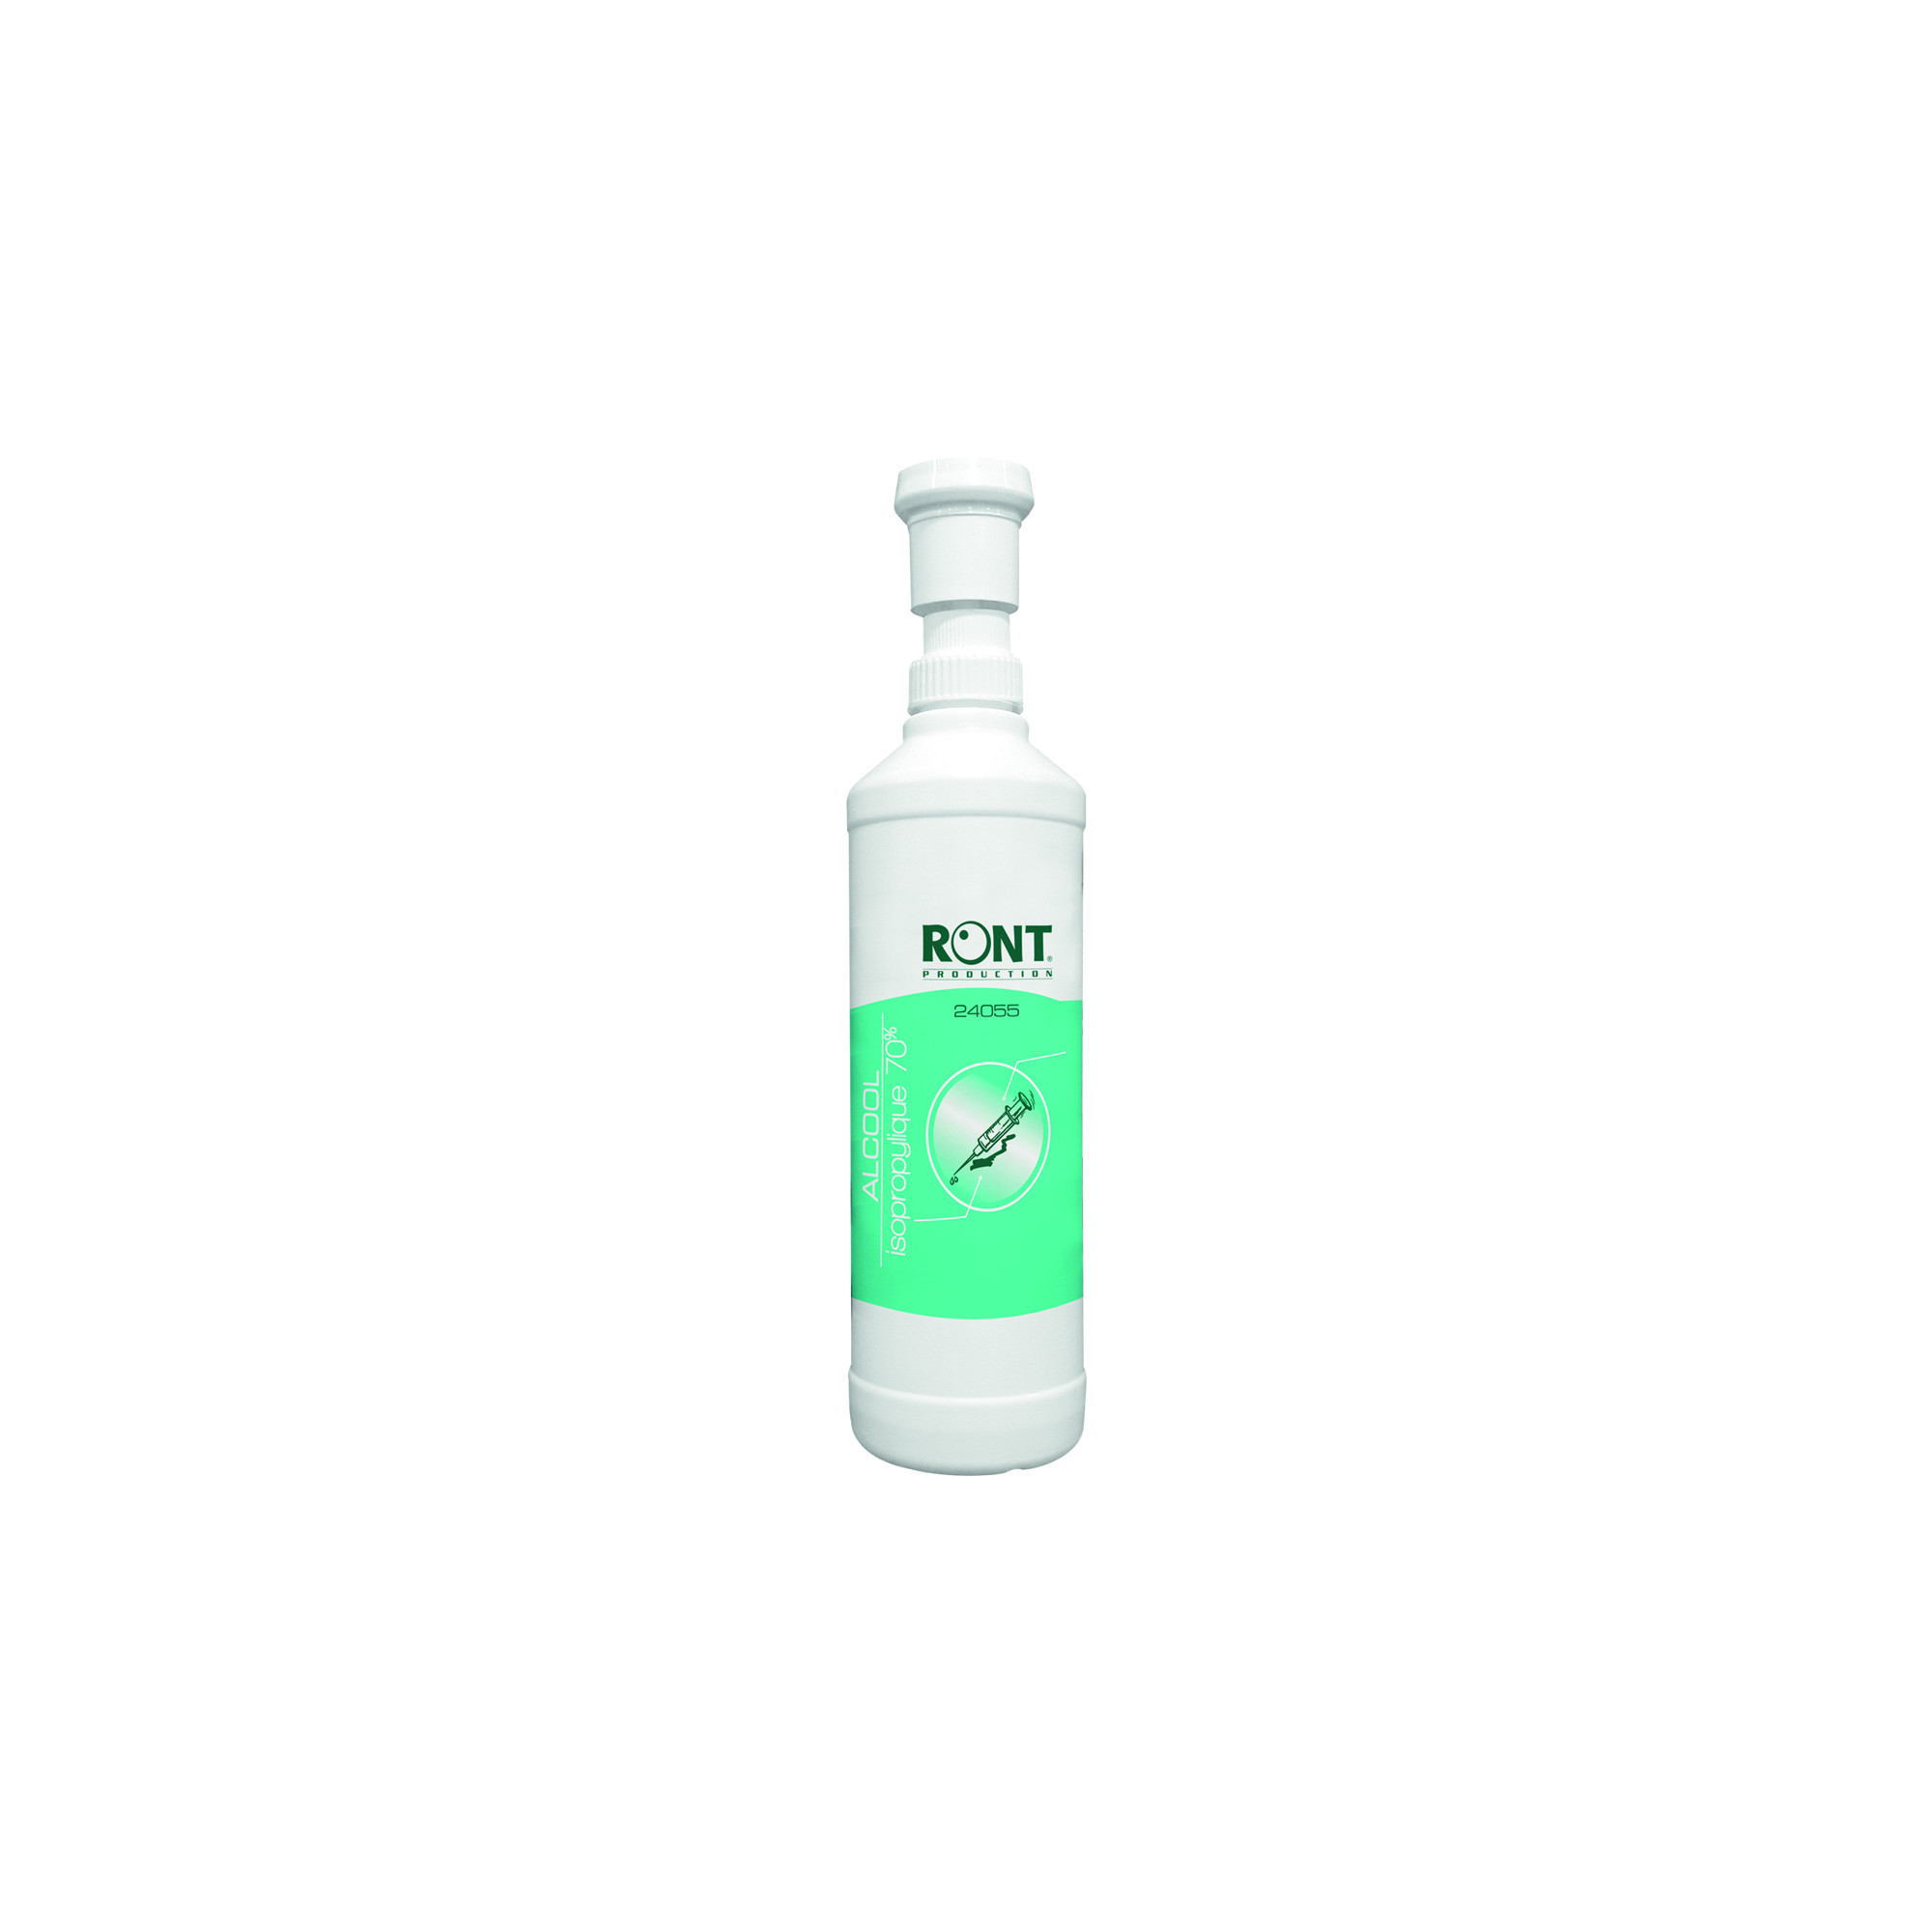 Dish alcool isopropylique 70% - 500ml - Ront